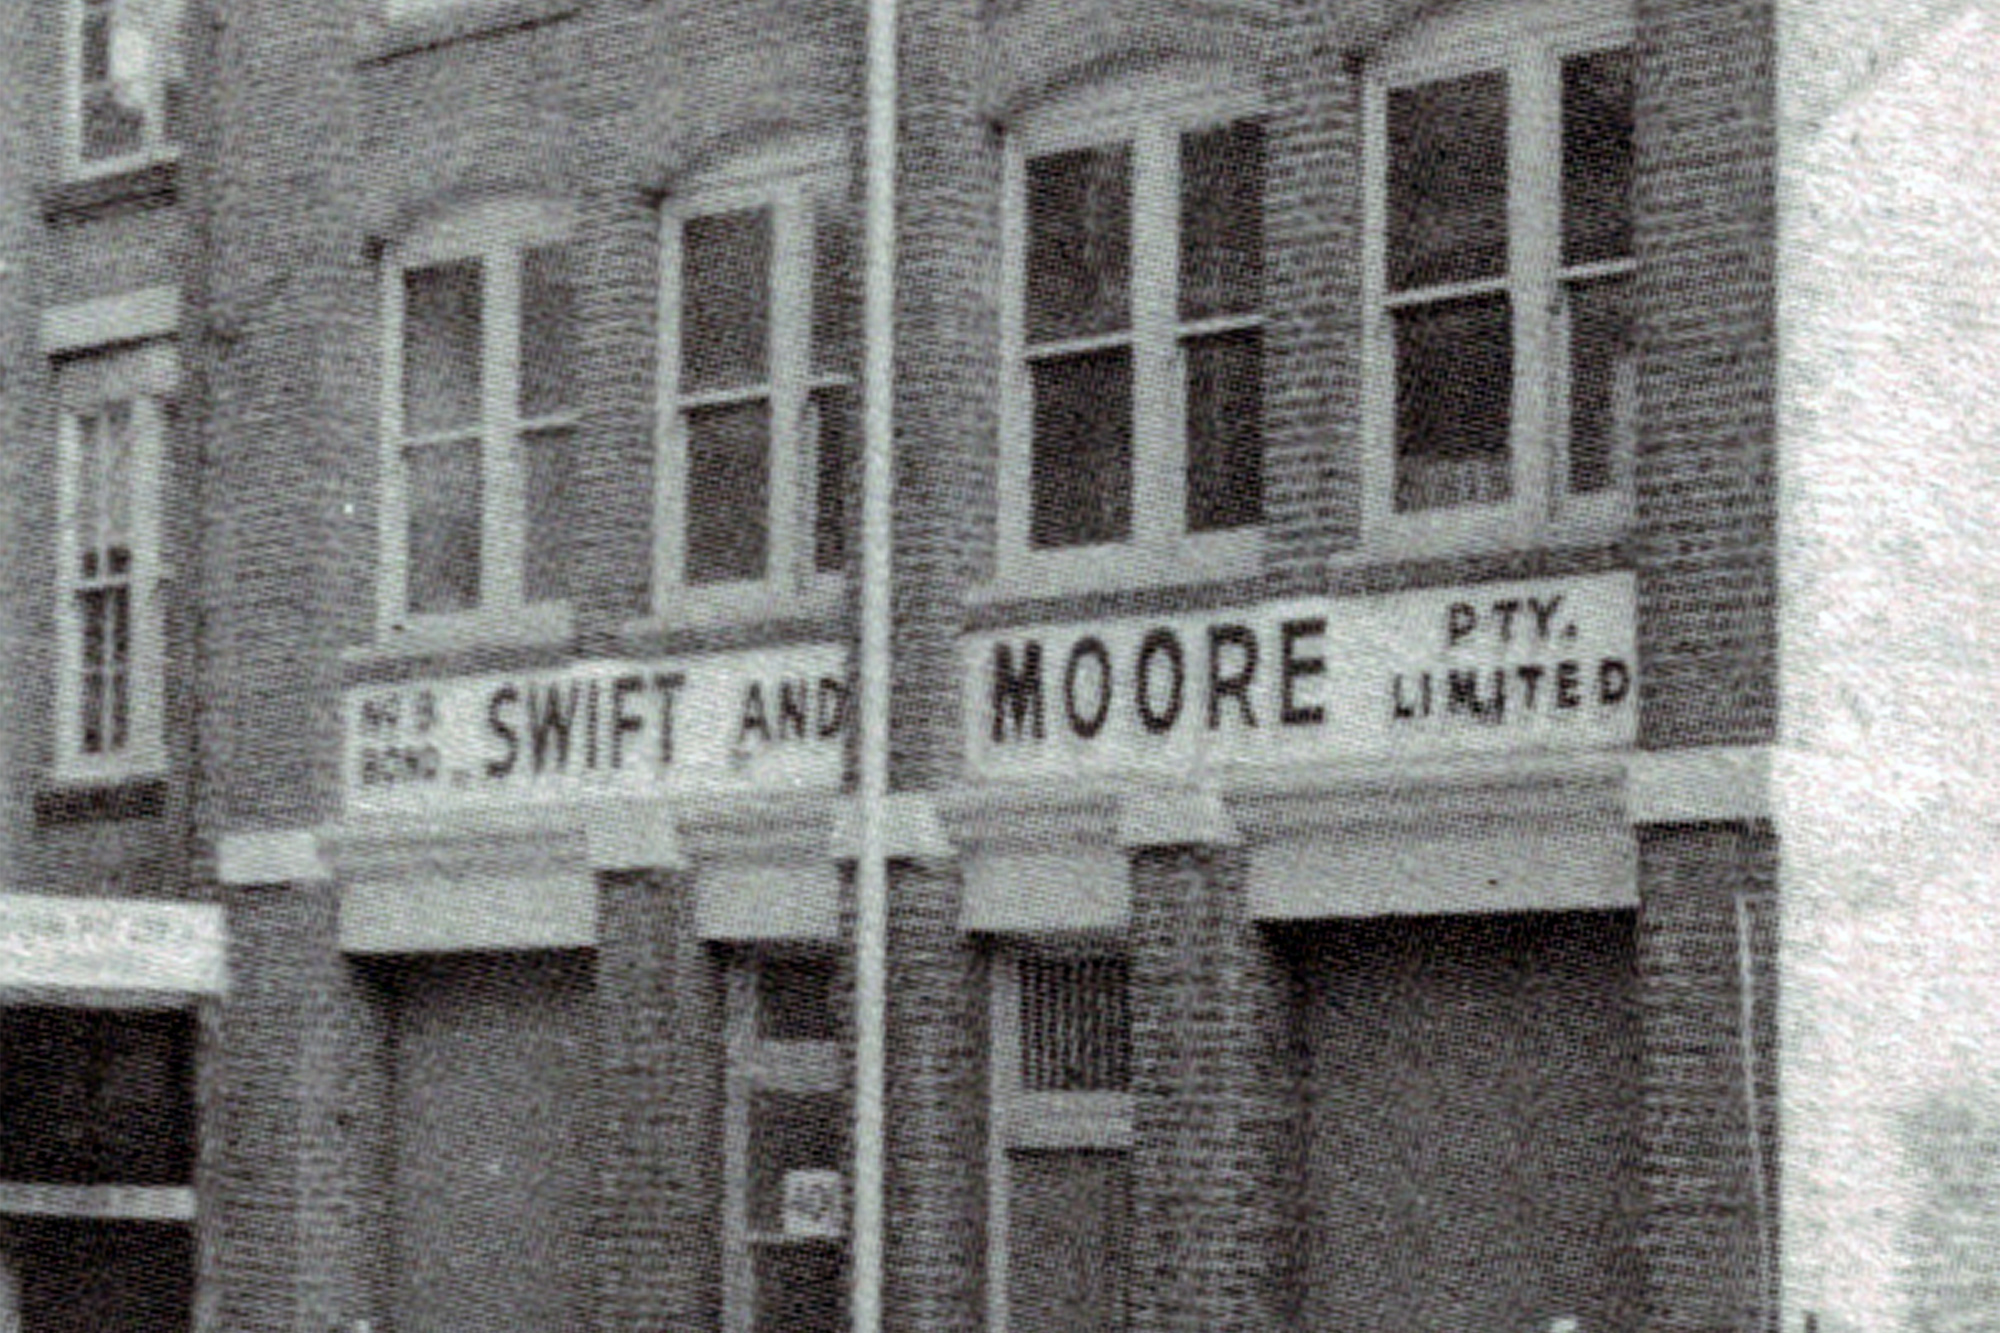 Swift + Moore Beverages Historial Image